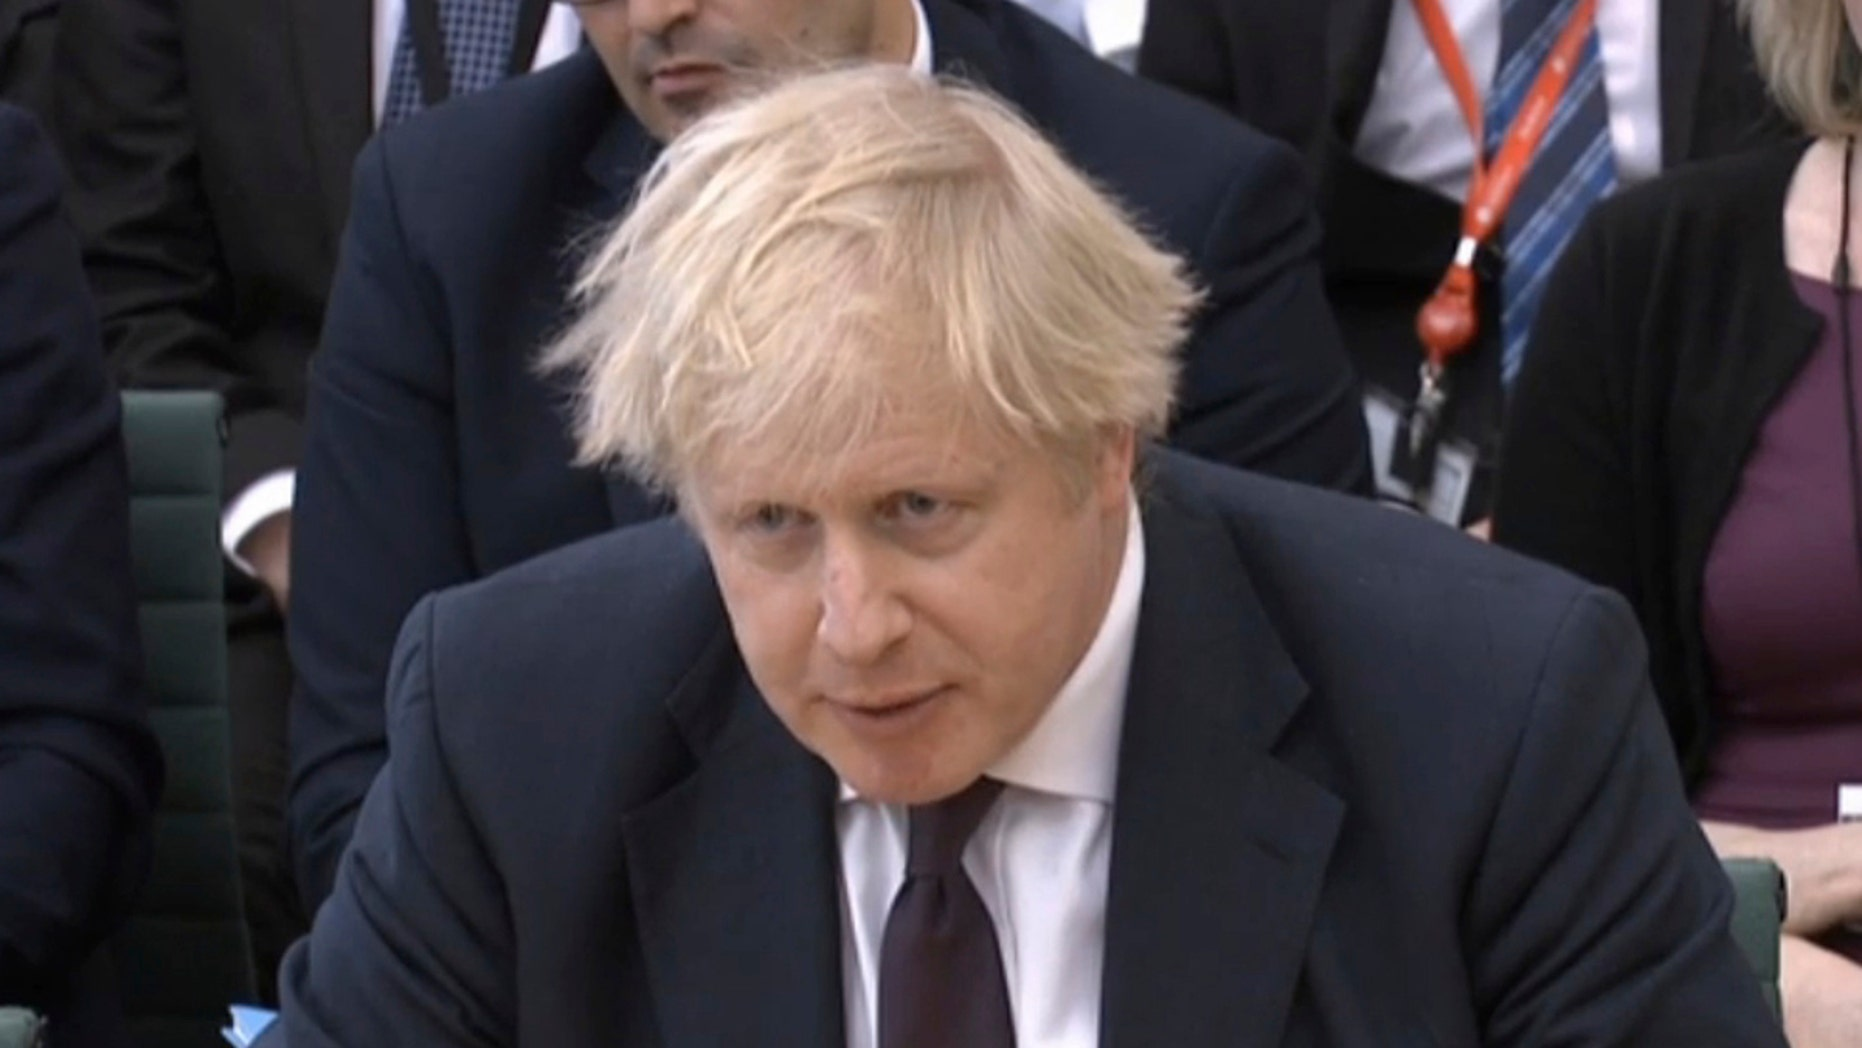 Britain's Foreign Secretary Boris Johnson is seen in Portcullis House, London, March 21, 2018.